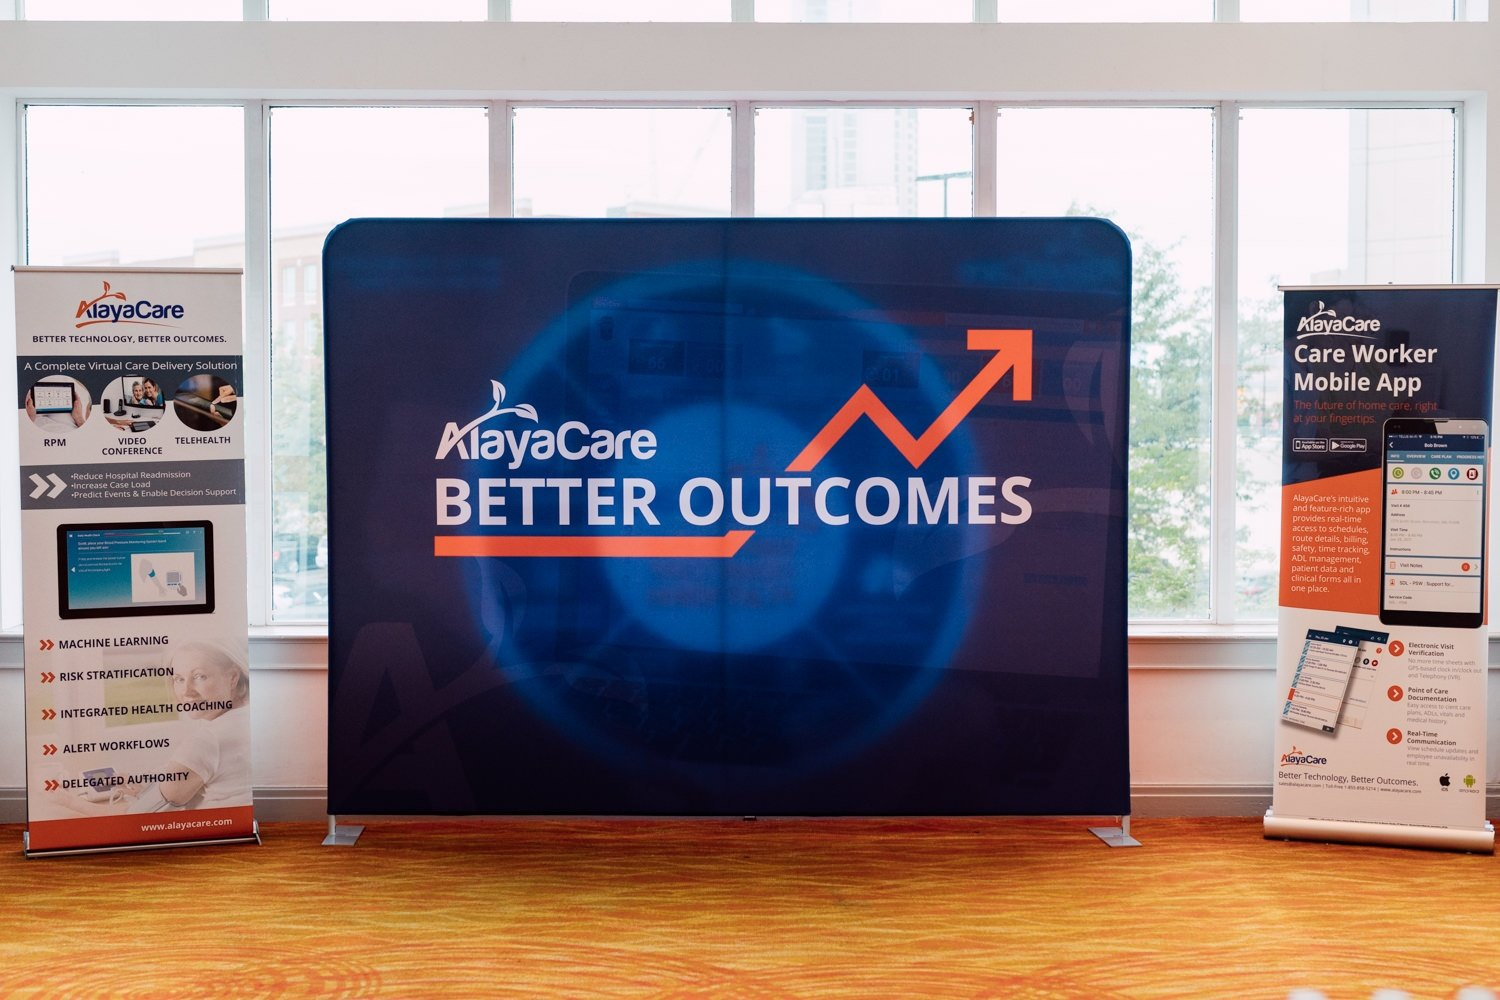 AlayaCare - Better Outcomes 2018